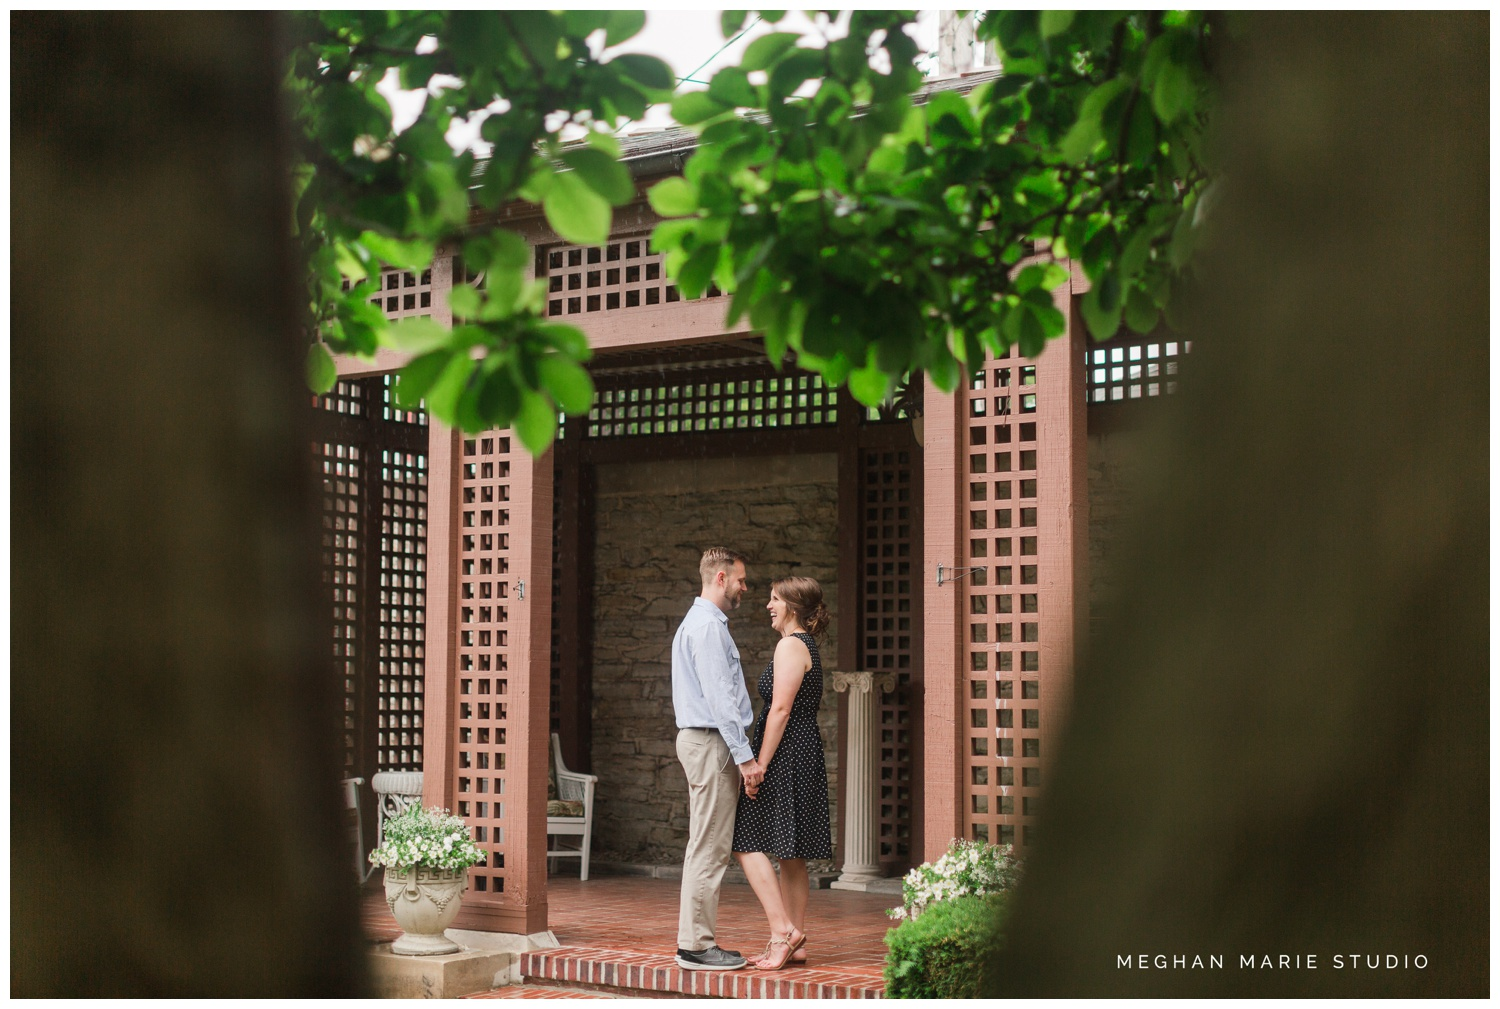 downtown-troy-urban-vintage-engagement-wedding-photography-hayner-cultural-center-meghan-marie-studio_0173.jpg